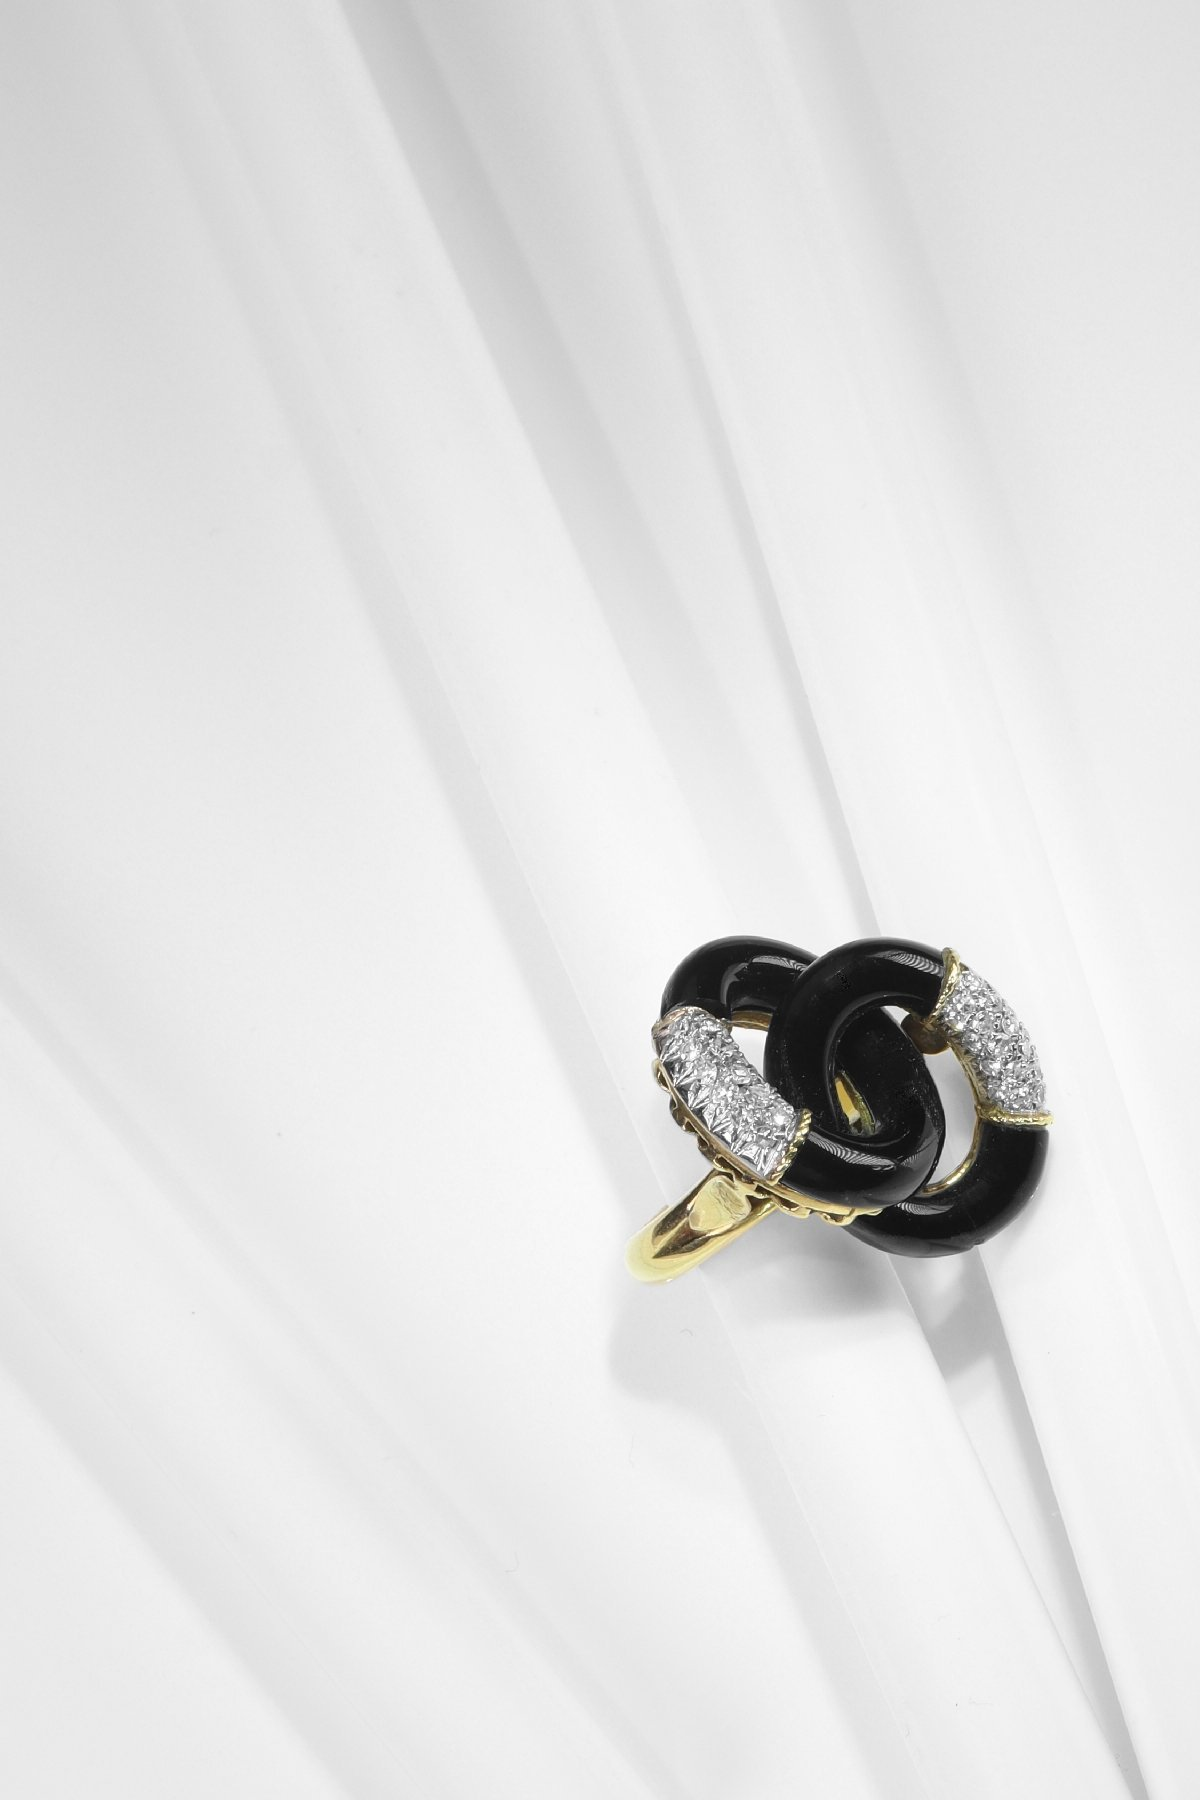 Click the picture to get to see this Vintage Seventies ring with onyx and diamonds.